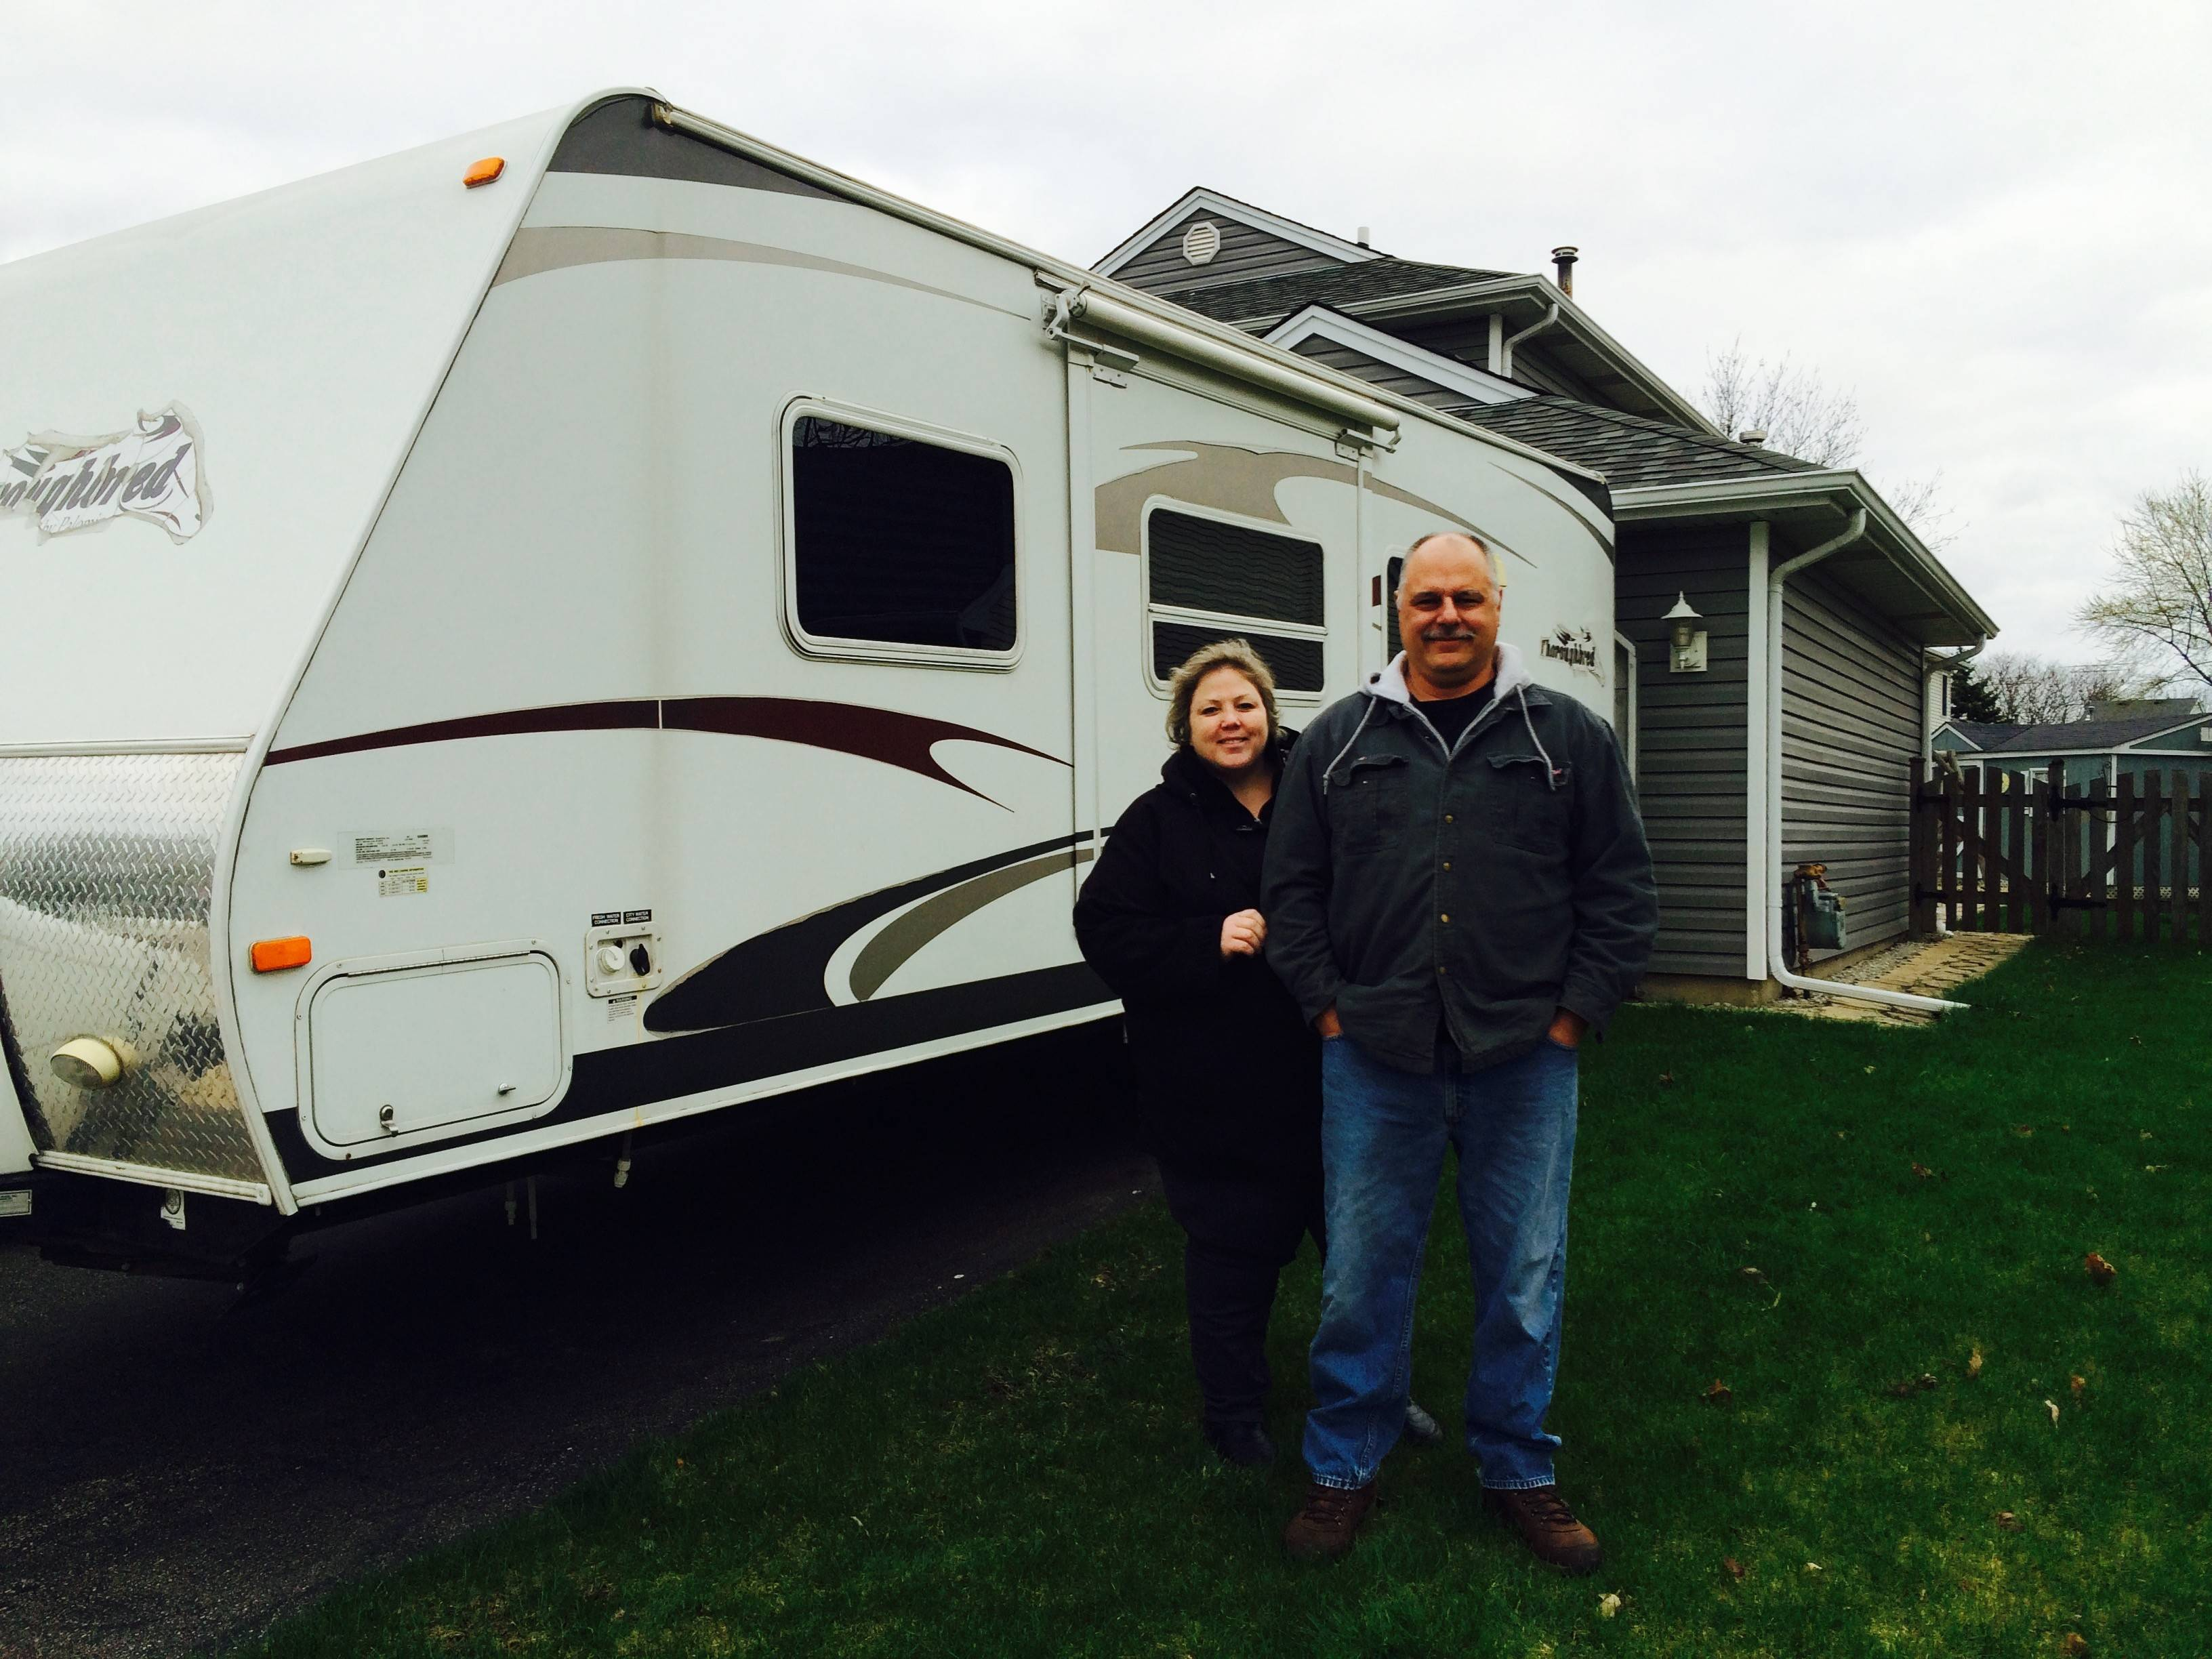 Cheryl Jacob, pictured here with her husband, Jeff Jacob, in 2015, hopes the city of Elgin will change its municipal code to allow recreational vehicles on private property. Cheryl Jacob petitioned the city four years ago and is going to again Wednesday.